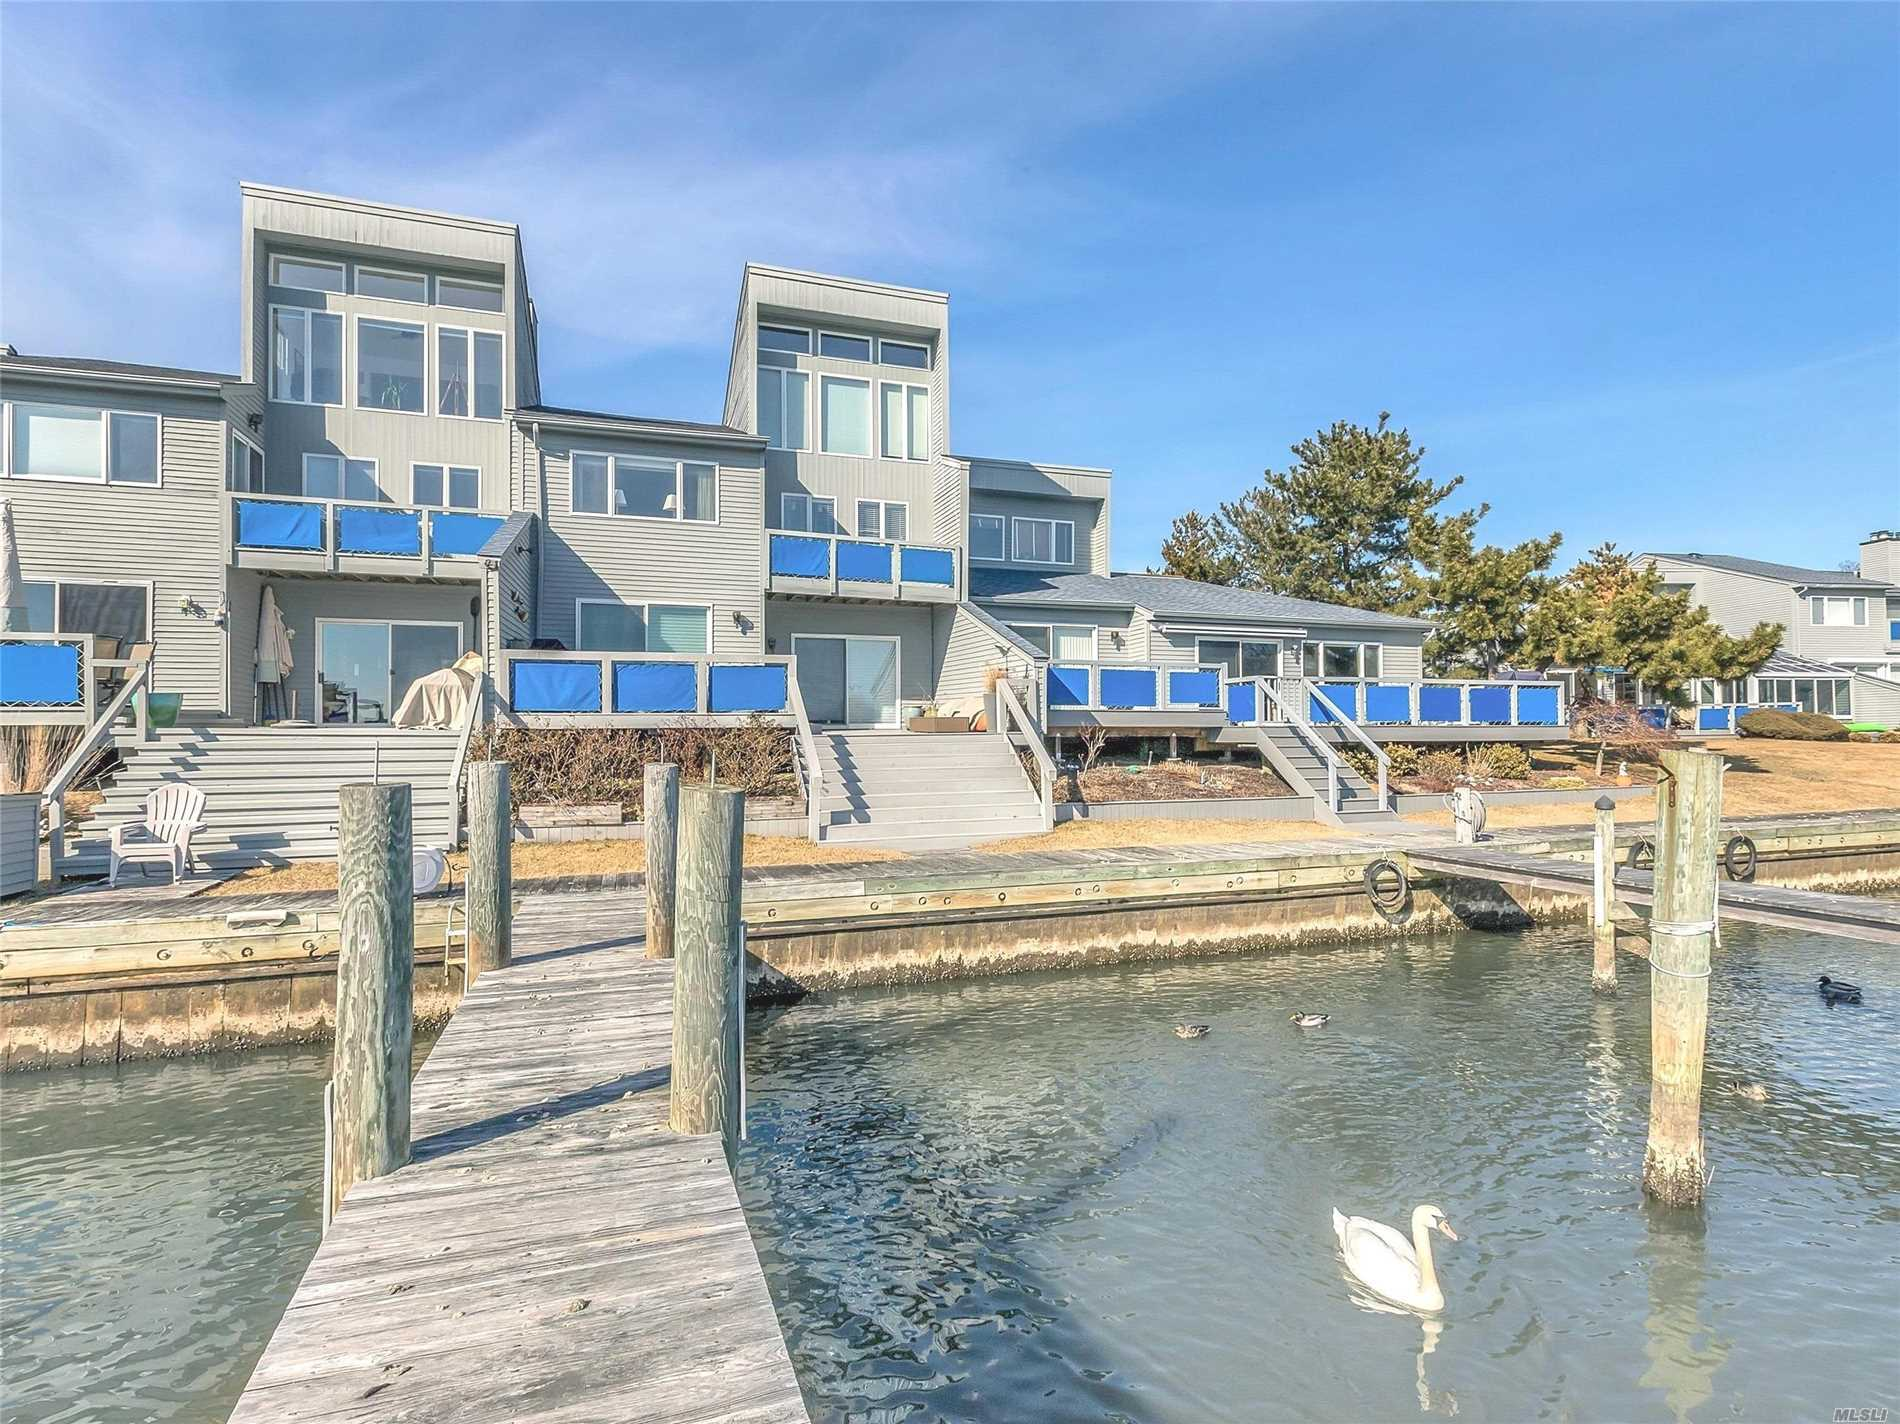 Beautiful Waterfront 3 Story Condo! Breathtaking Views Of Fire Island! This Pristine Unit Features Vaulted Ceilings, Eat In Kitchen W/Granite Countertops, Hardwood Floors, 2 1/2 Baths, Which Includes Master En Suite W/Jacuzzi & Sep. Stand-Up Shower, Custom Blinds, Lr W/Fireplace, Outdoor Entertaining Area, Boat Slip And Finger Dock. Resort Style Living Also Includes Tennis Courts, Clubhouse W/Gym & Saunas. 24 Hr. Guarded Security. A Must See!